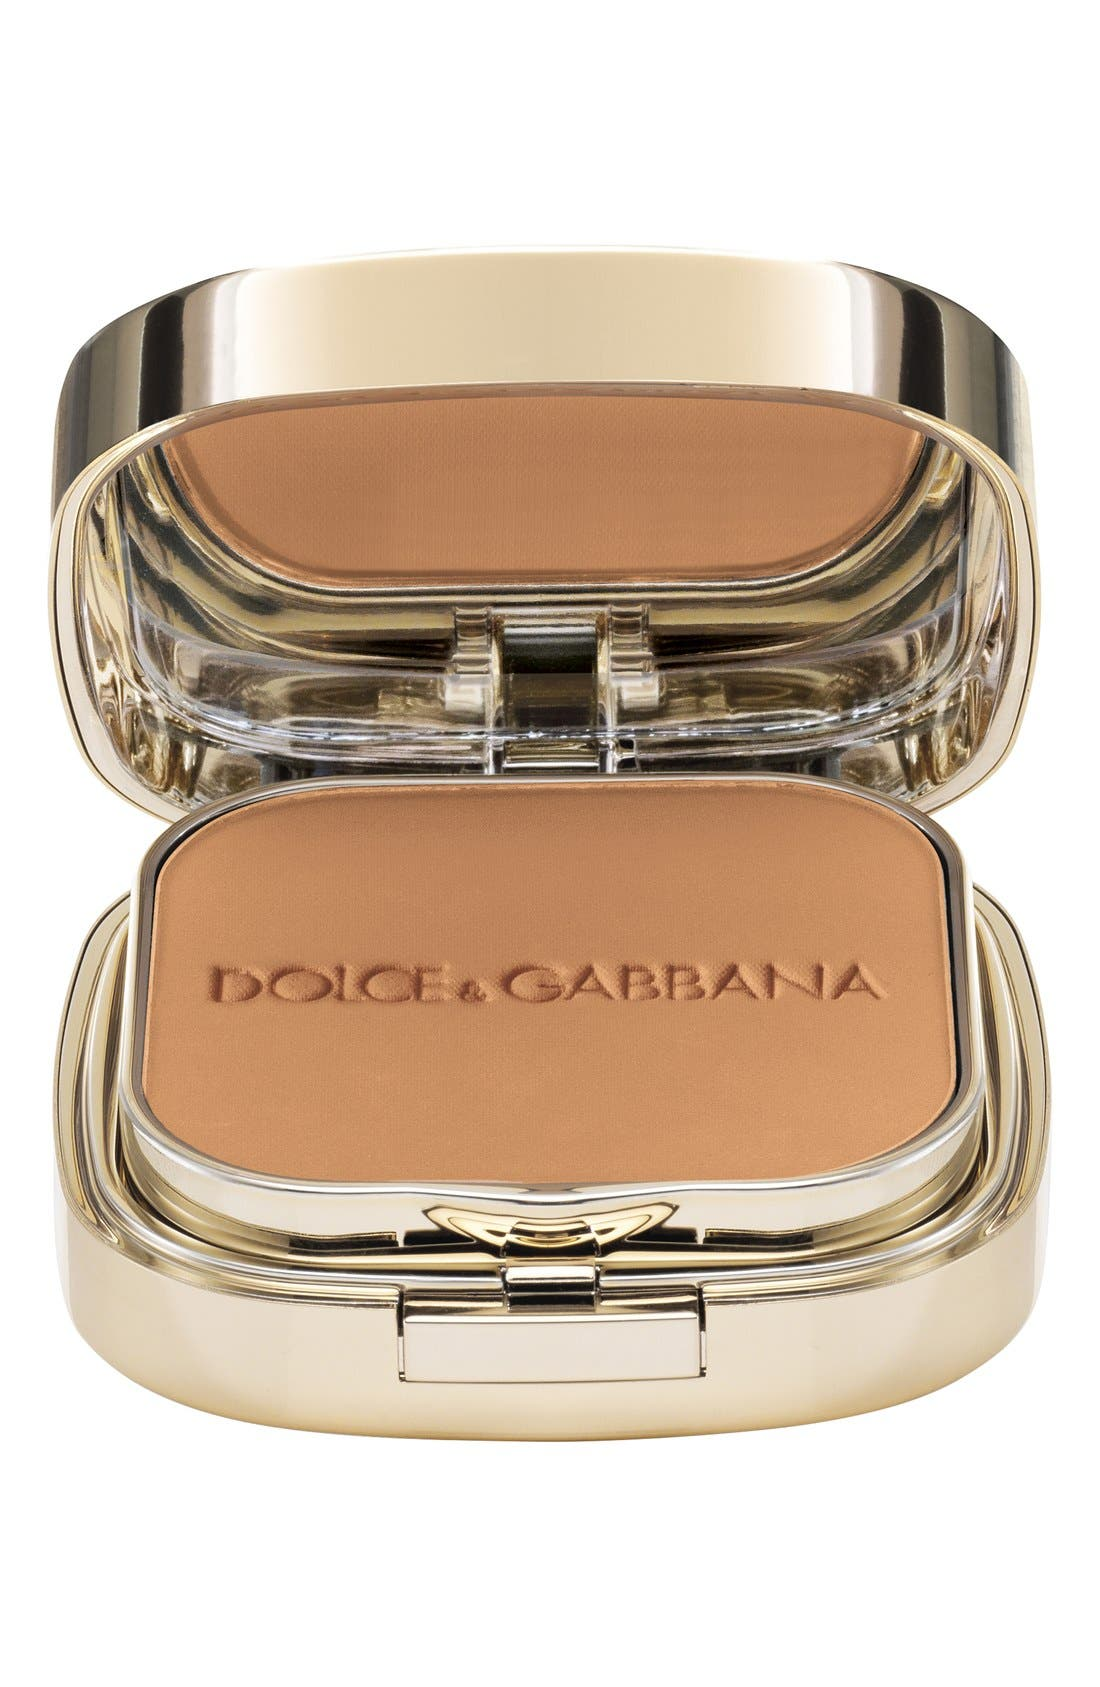 Dolce&Gabbana Beauty Perfect Matte Powder Foundation